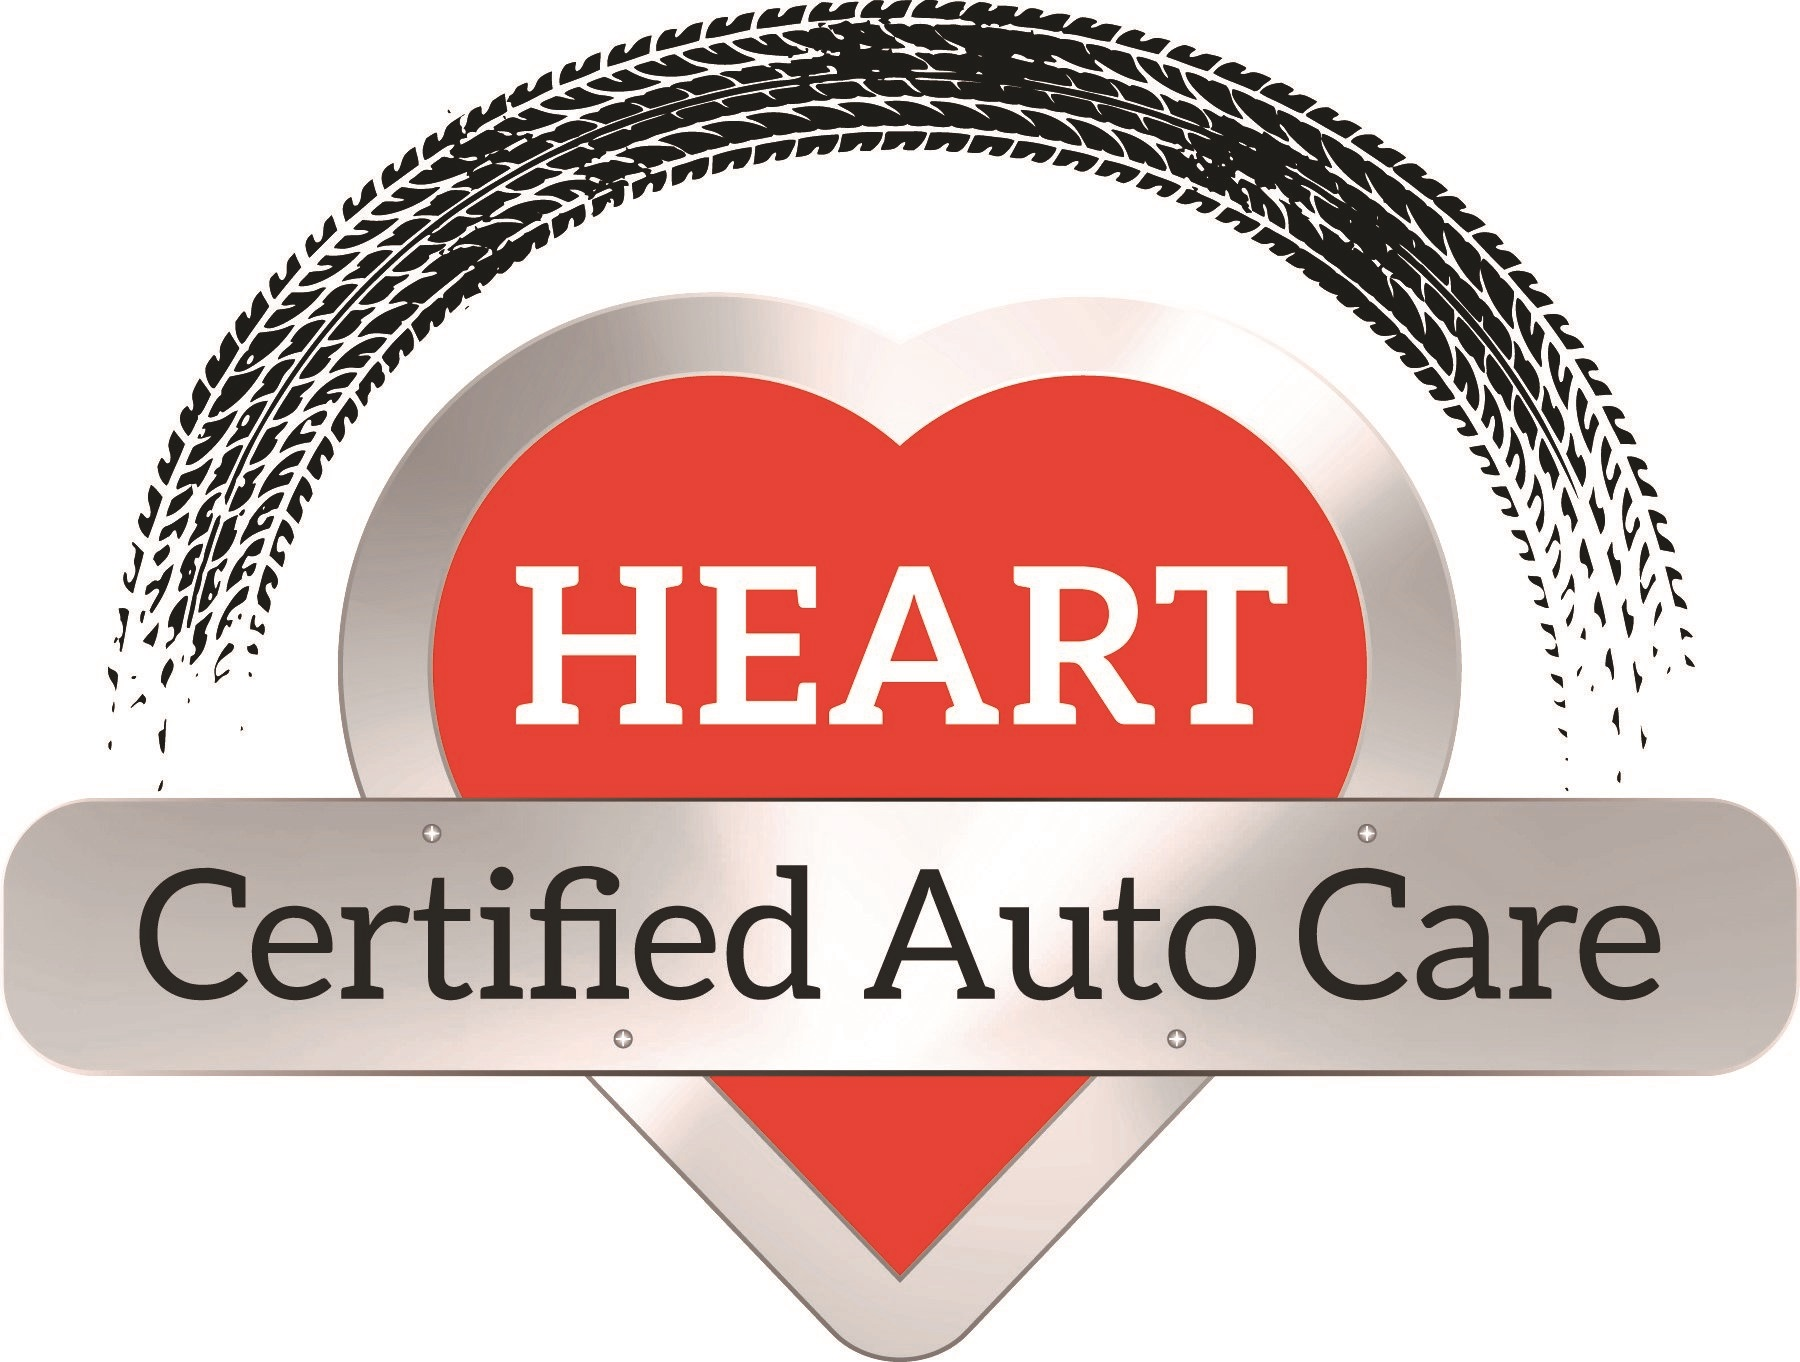 Heart Certified Auto Care logo